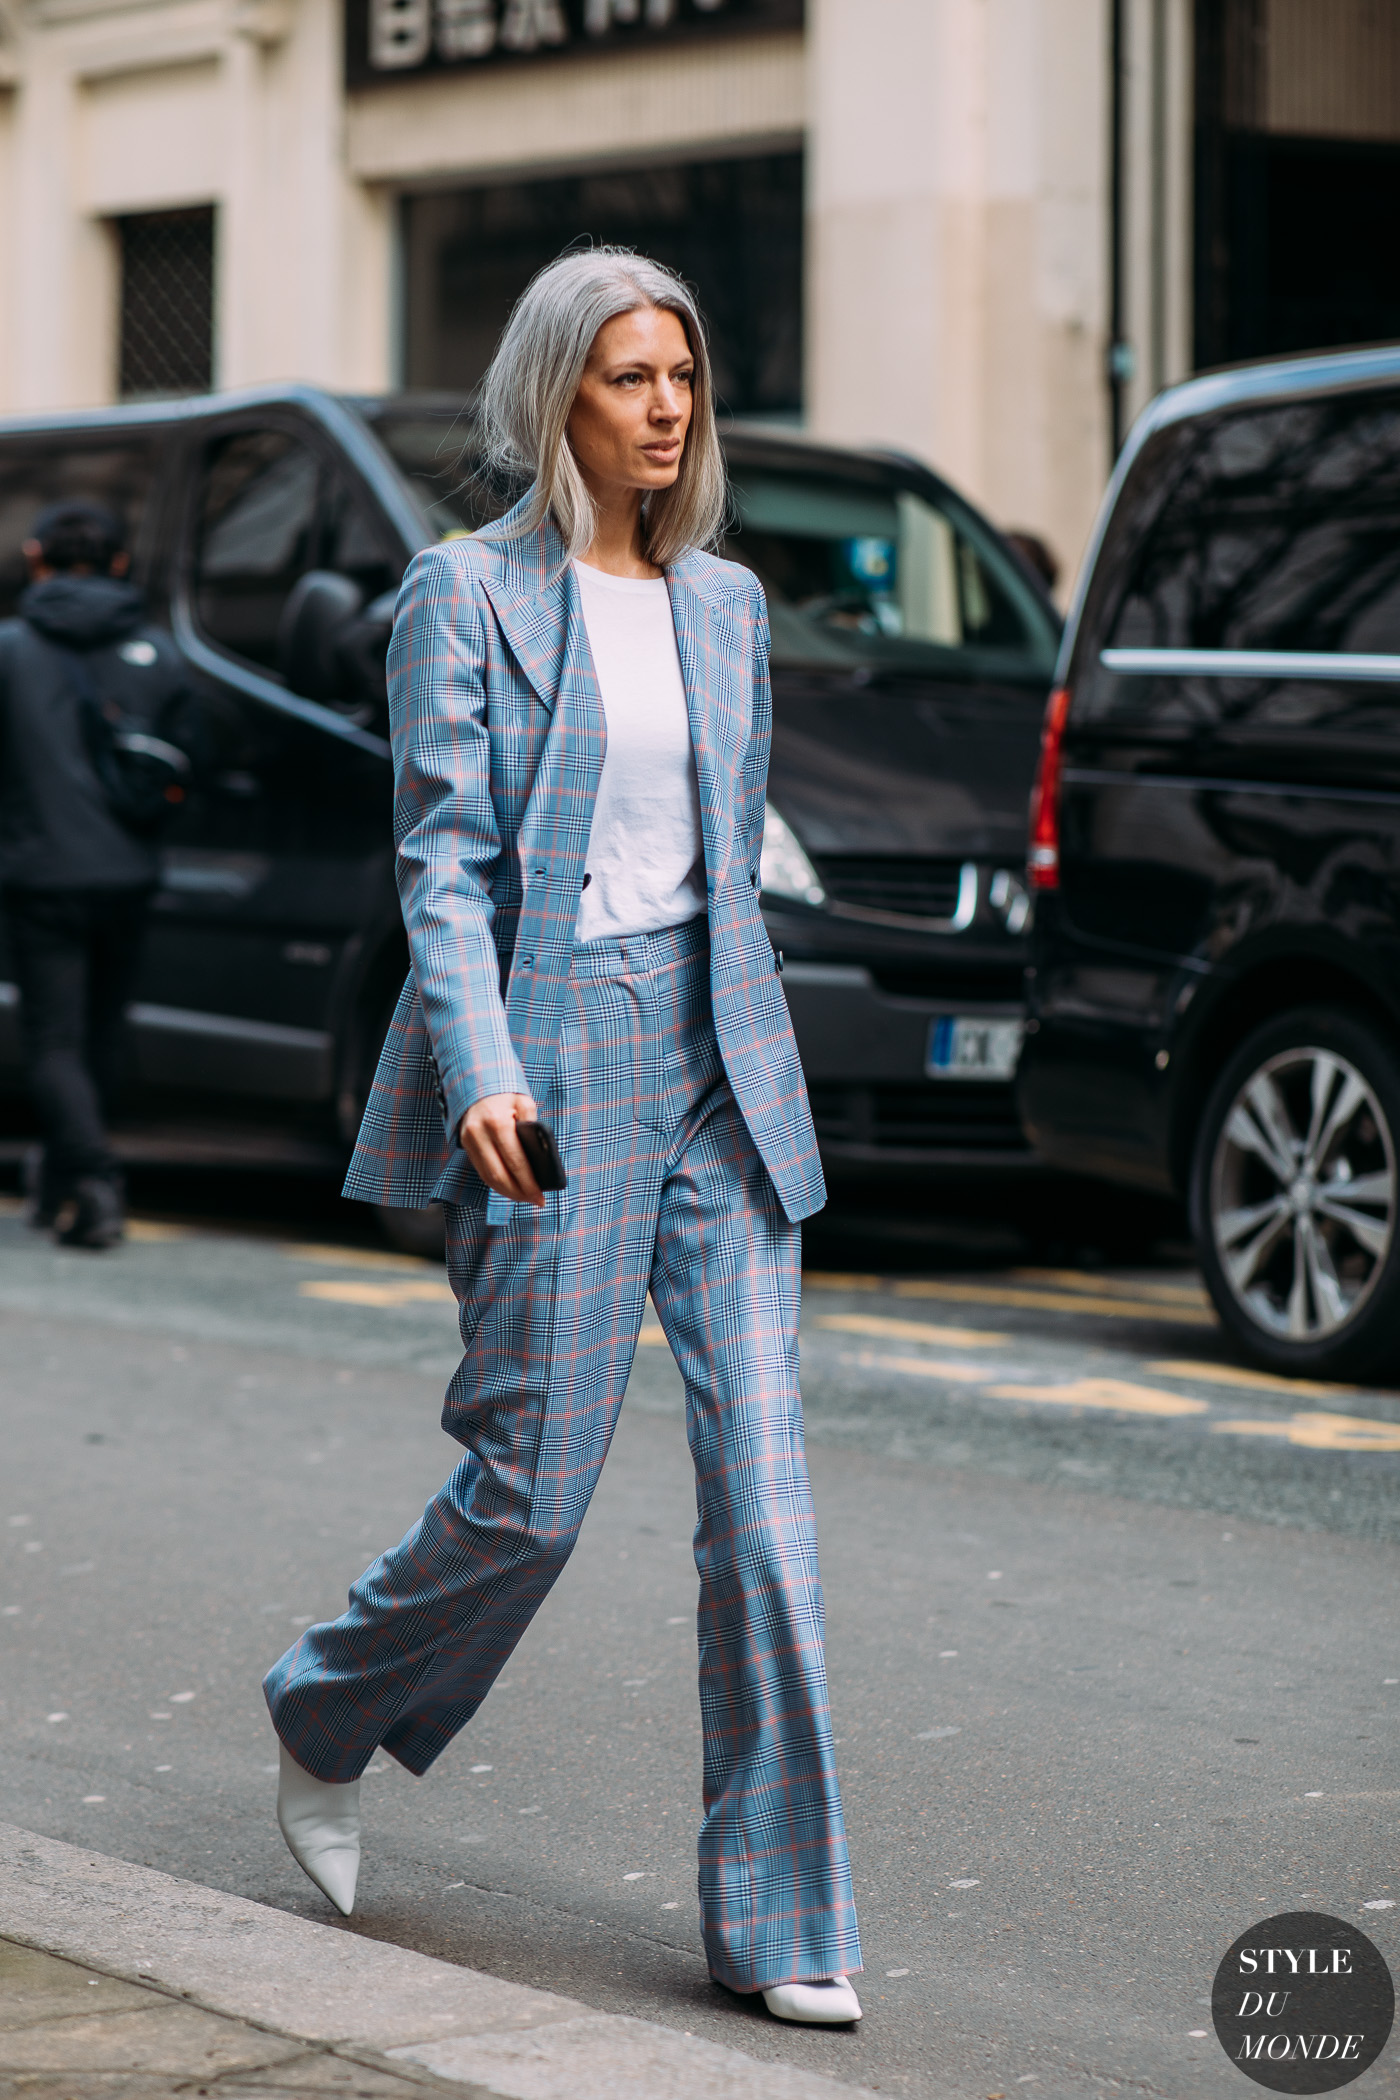 Sarah Harris by STYLEDUMONDE Street Style Fashion Photography FW18 20180305_48A6398